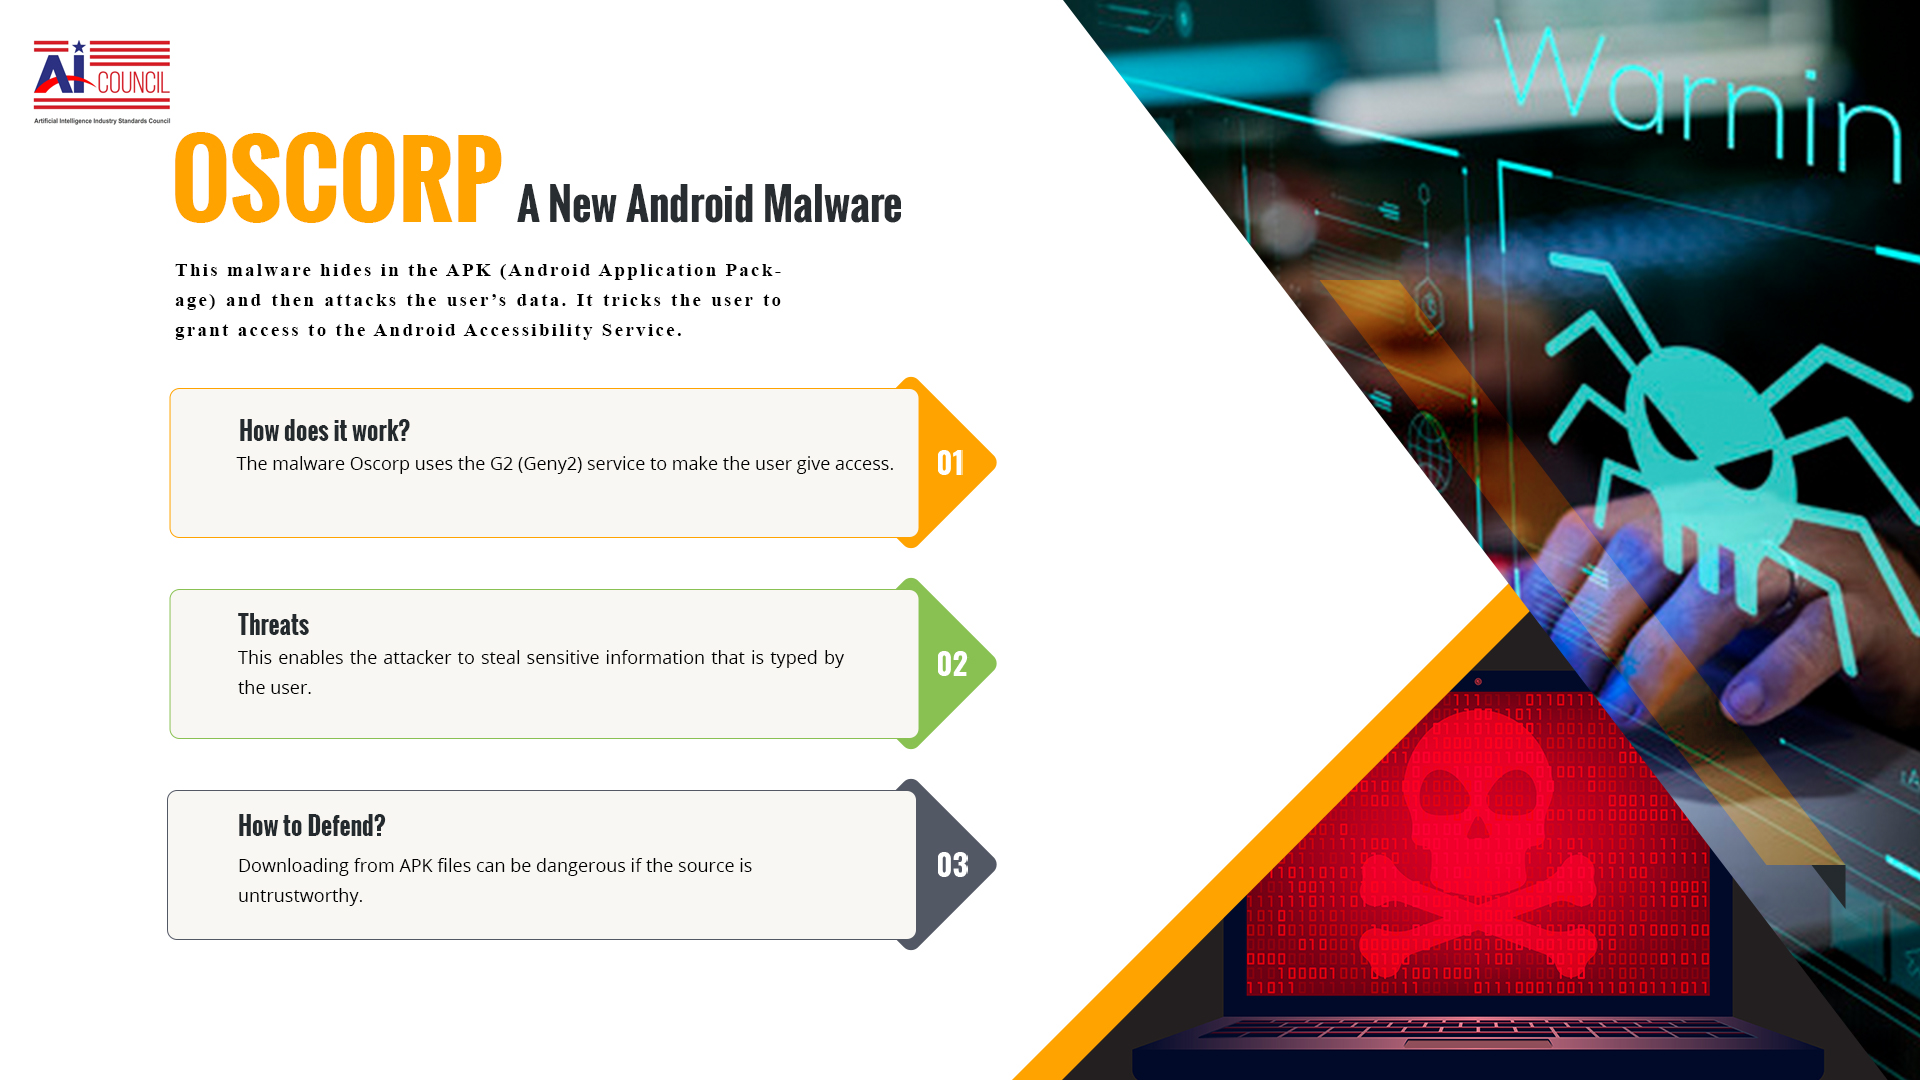 OSCORP—A New Android Malware